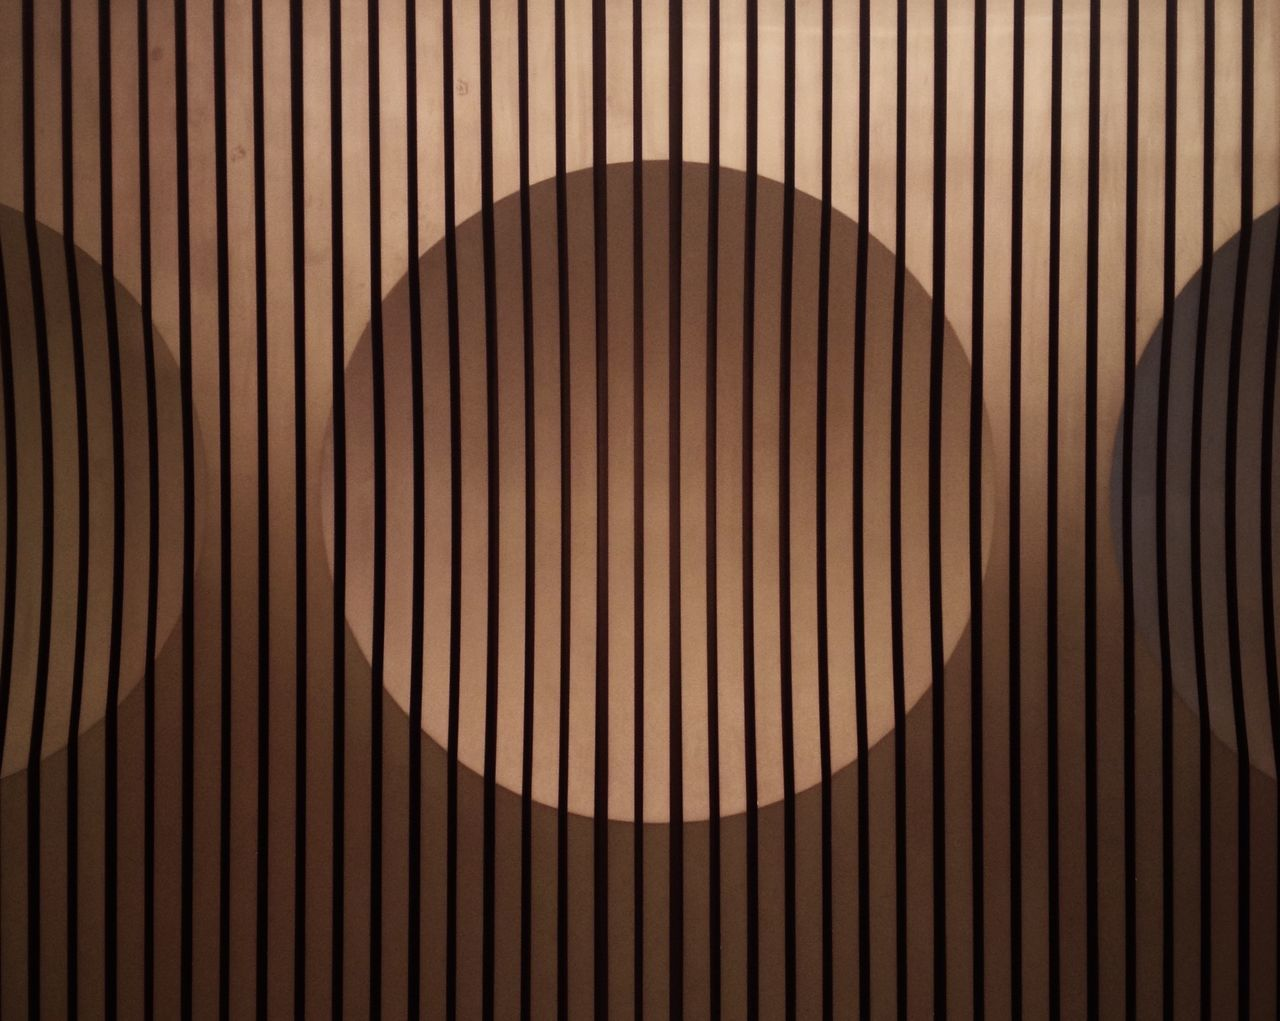 Architecture,  Backgrounds,  Brown,  Circle,  Close-Up